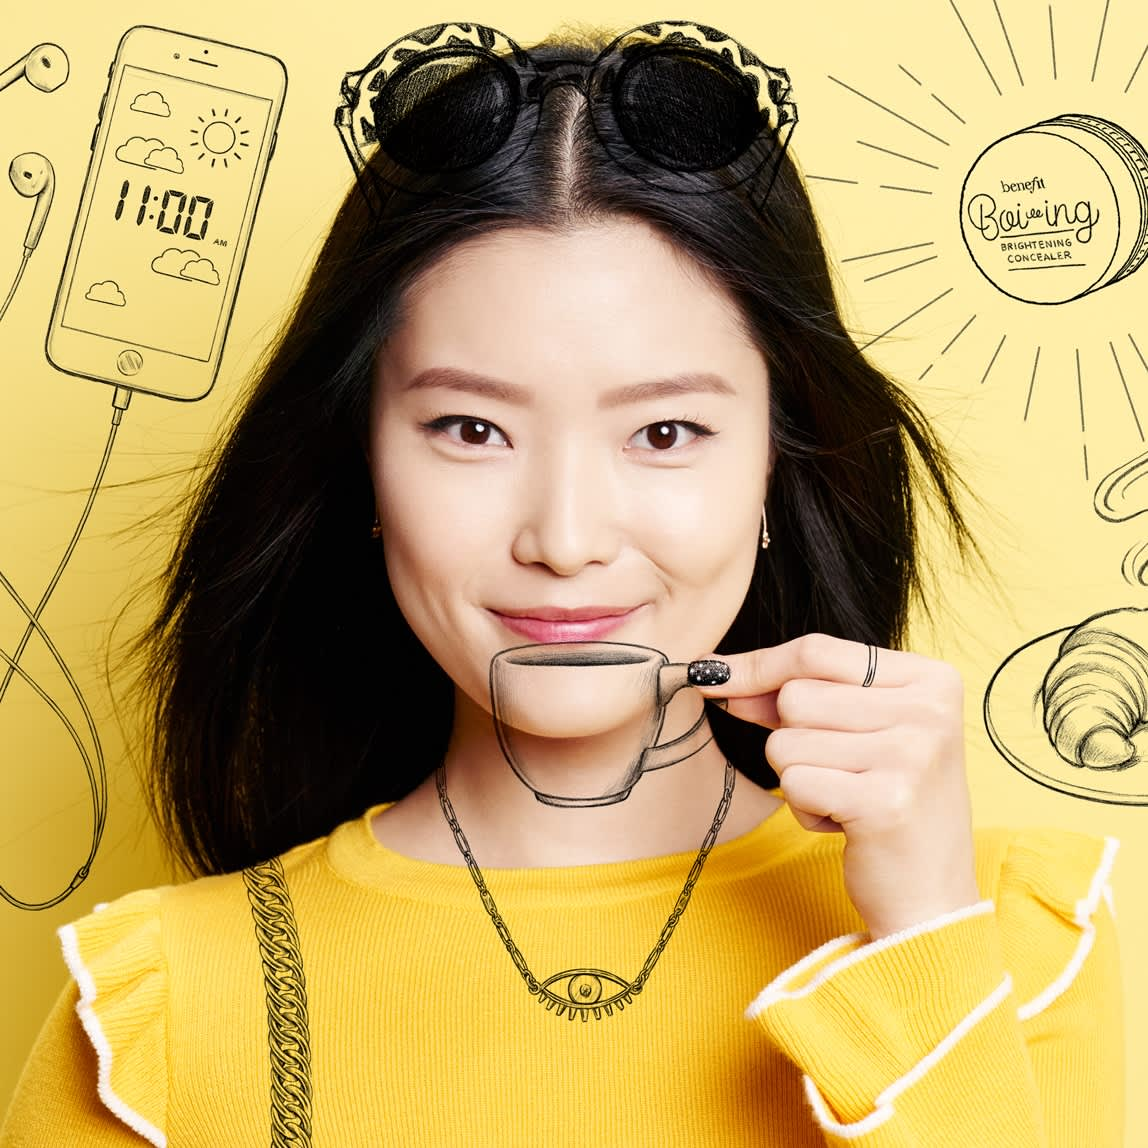 Benefit Cosmetics | Boi-ing Campaign